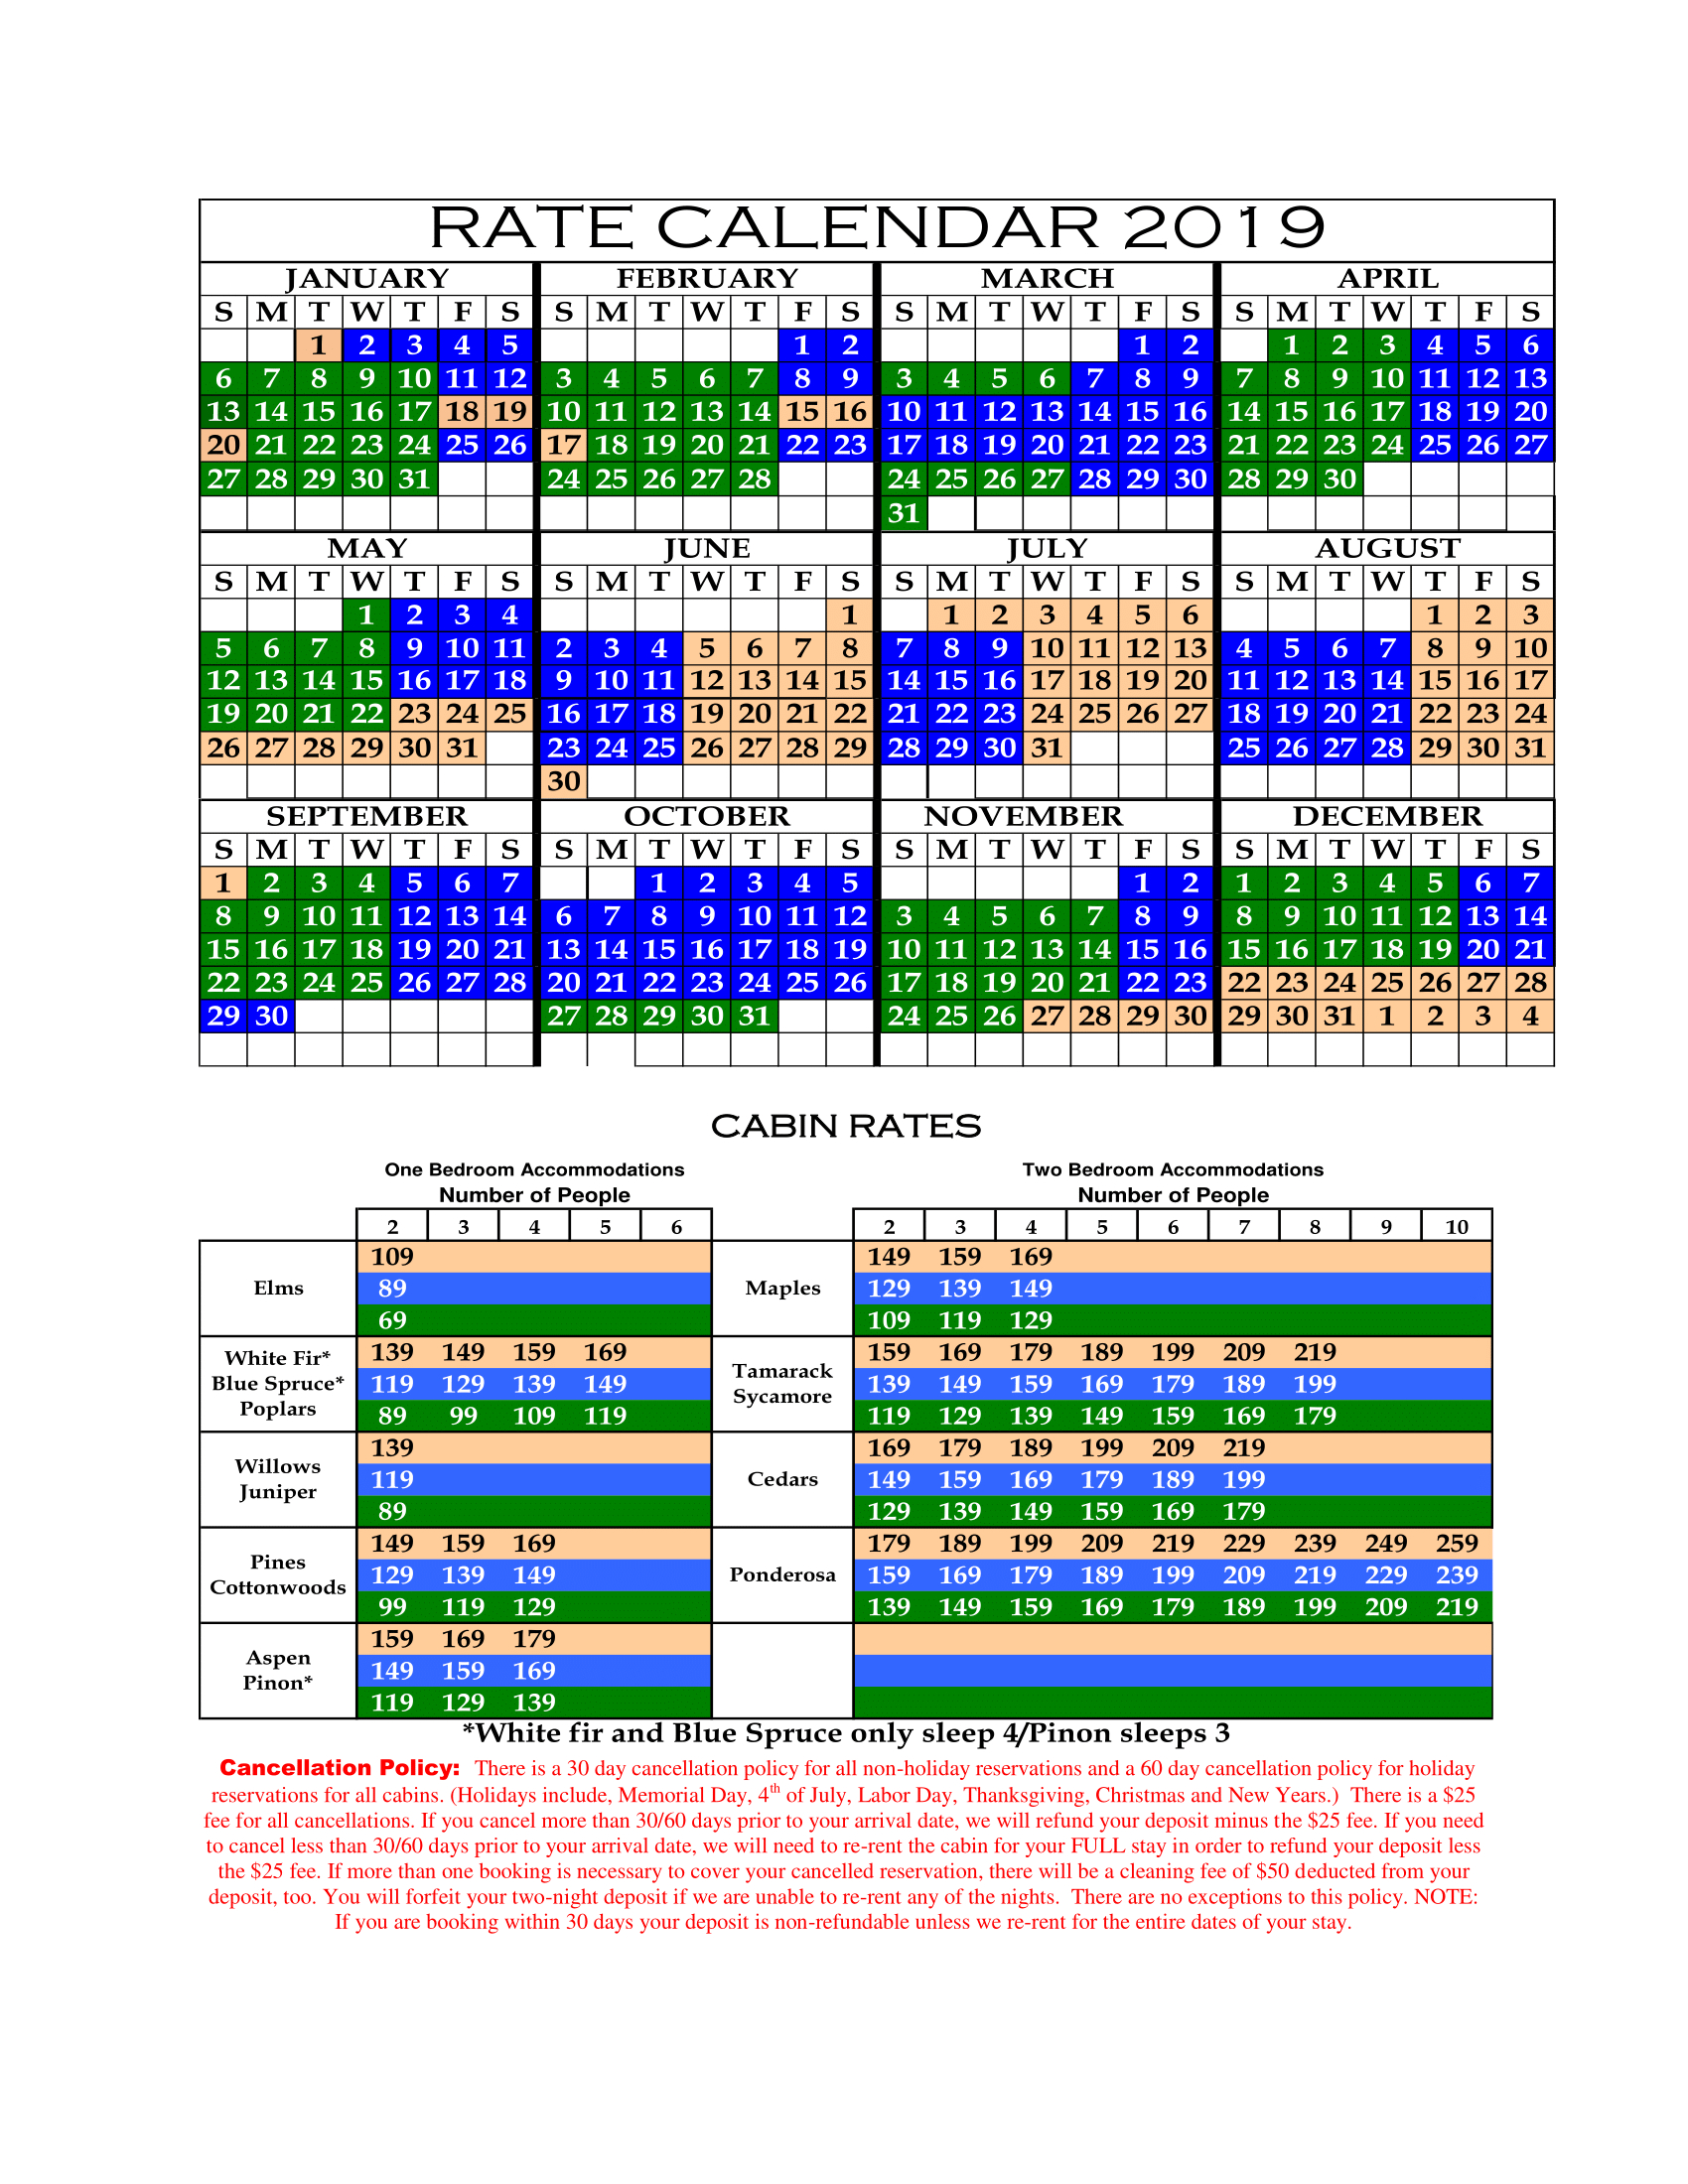 Reserve/rates/policies | Lazy Oaks | Page 4573582321 Calendar 2019 Rates